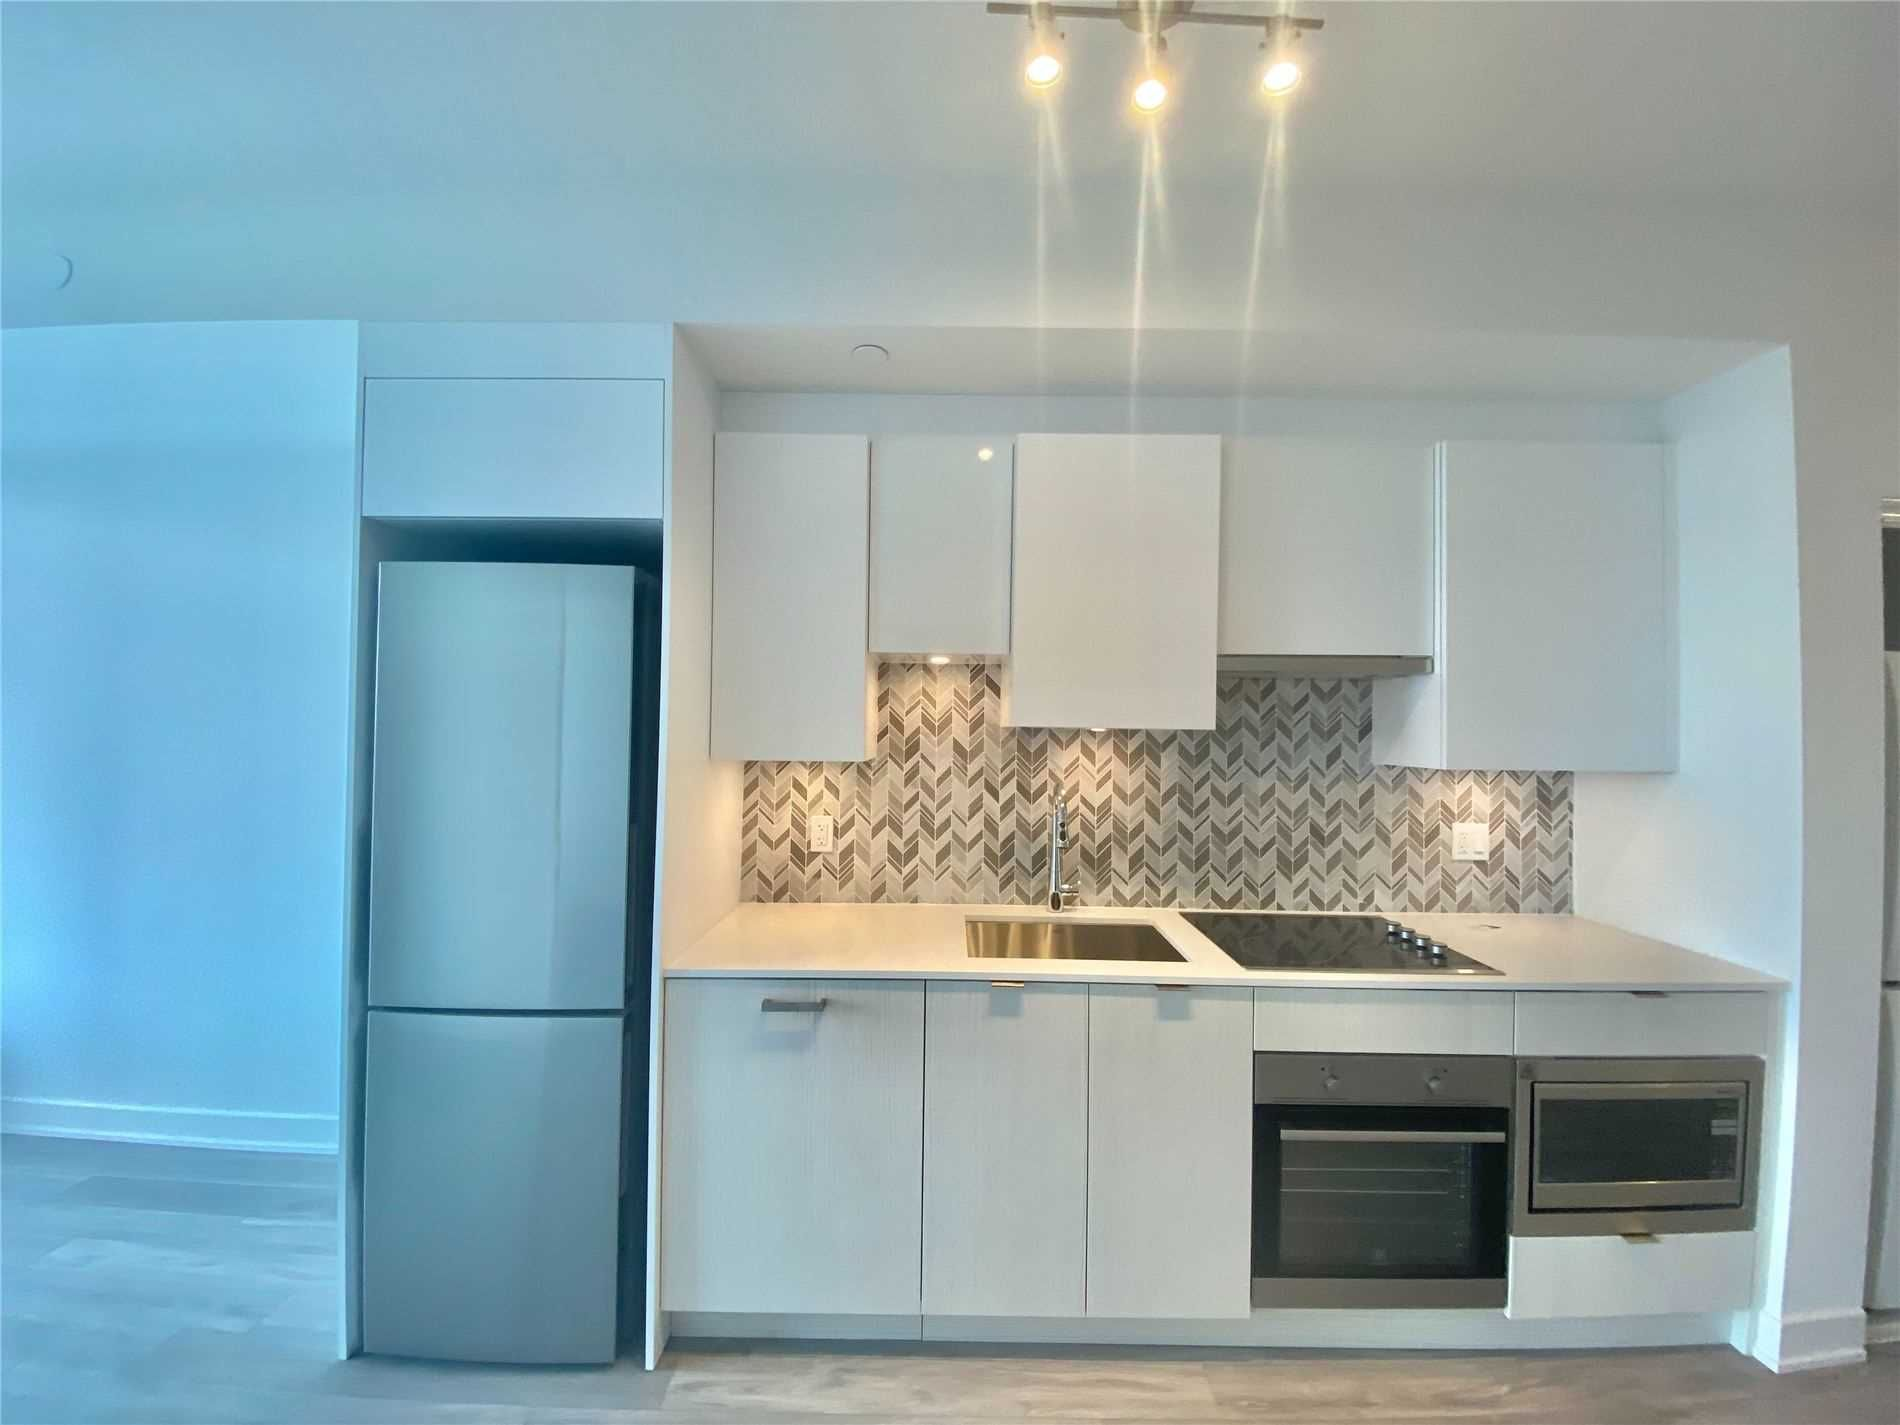 99 Broadway  Ave, unit 1801 Nt for rent in Toronto - image #2